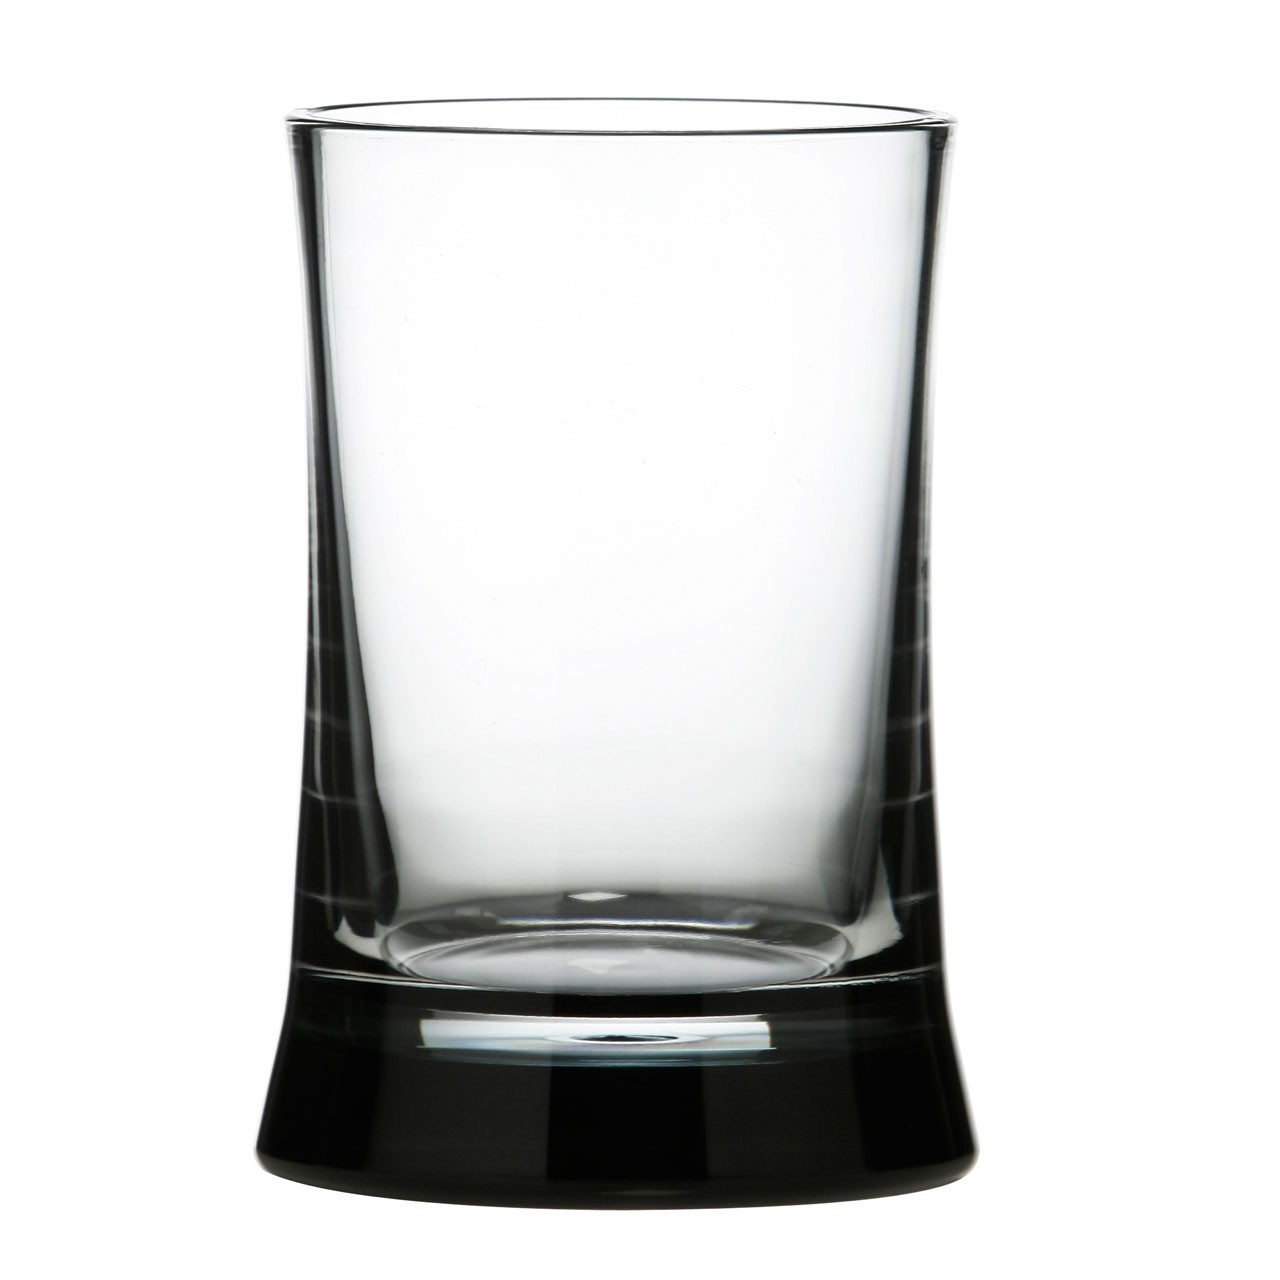 Acrylic Tumbler - Black/Clear